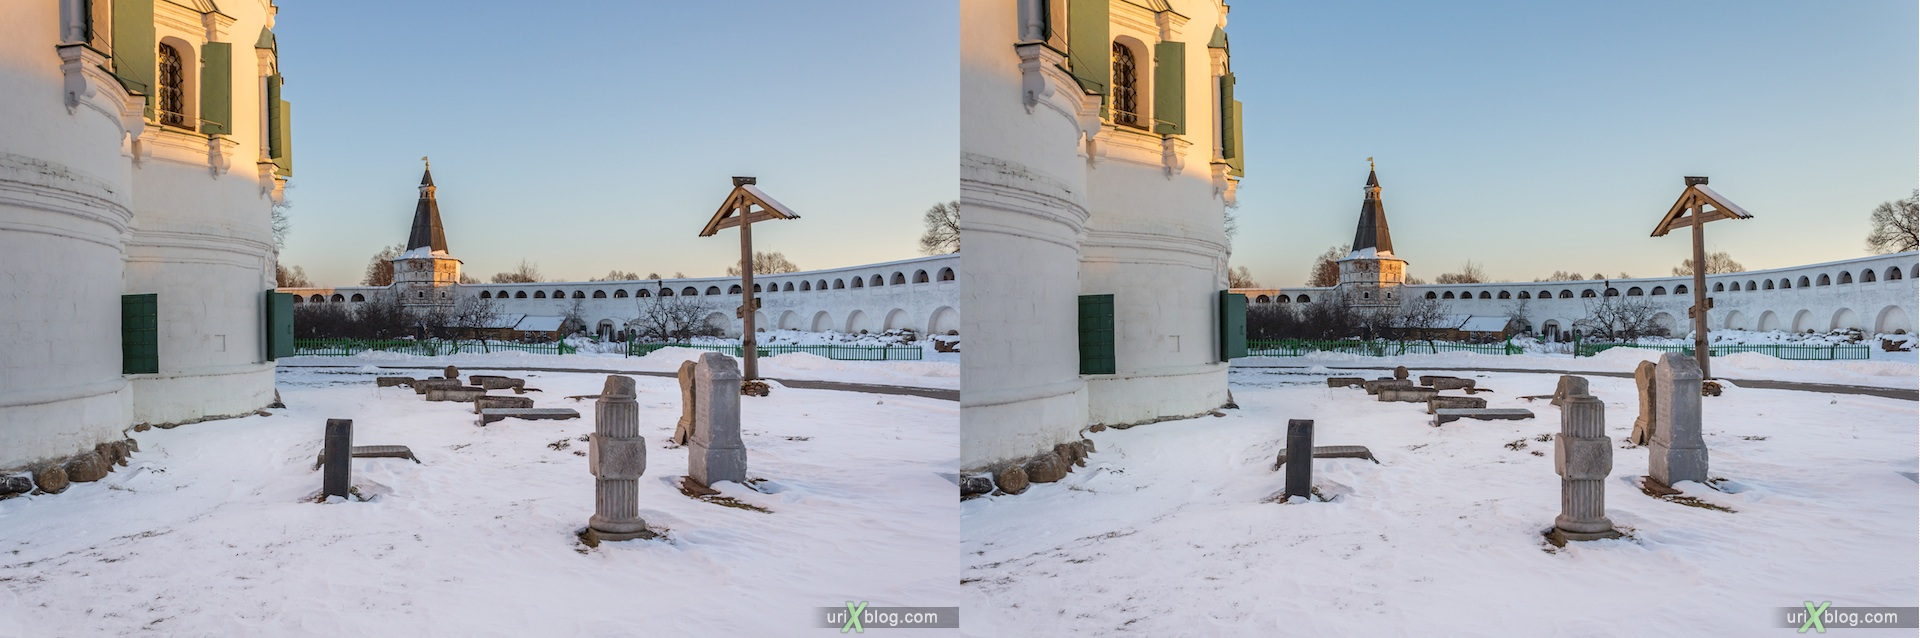 2012, Iosifo-Volotsky monastery, Moscow region, Russia, church, snow, winter, sunny, cold, 3D, stereo pair, cross-eyed, crossview, cross view stereo pair